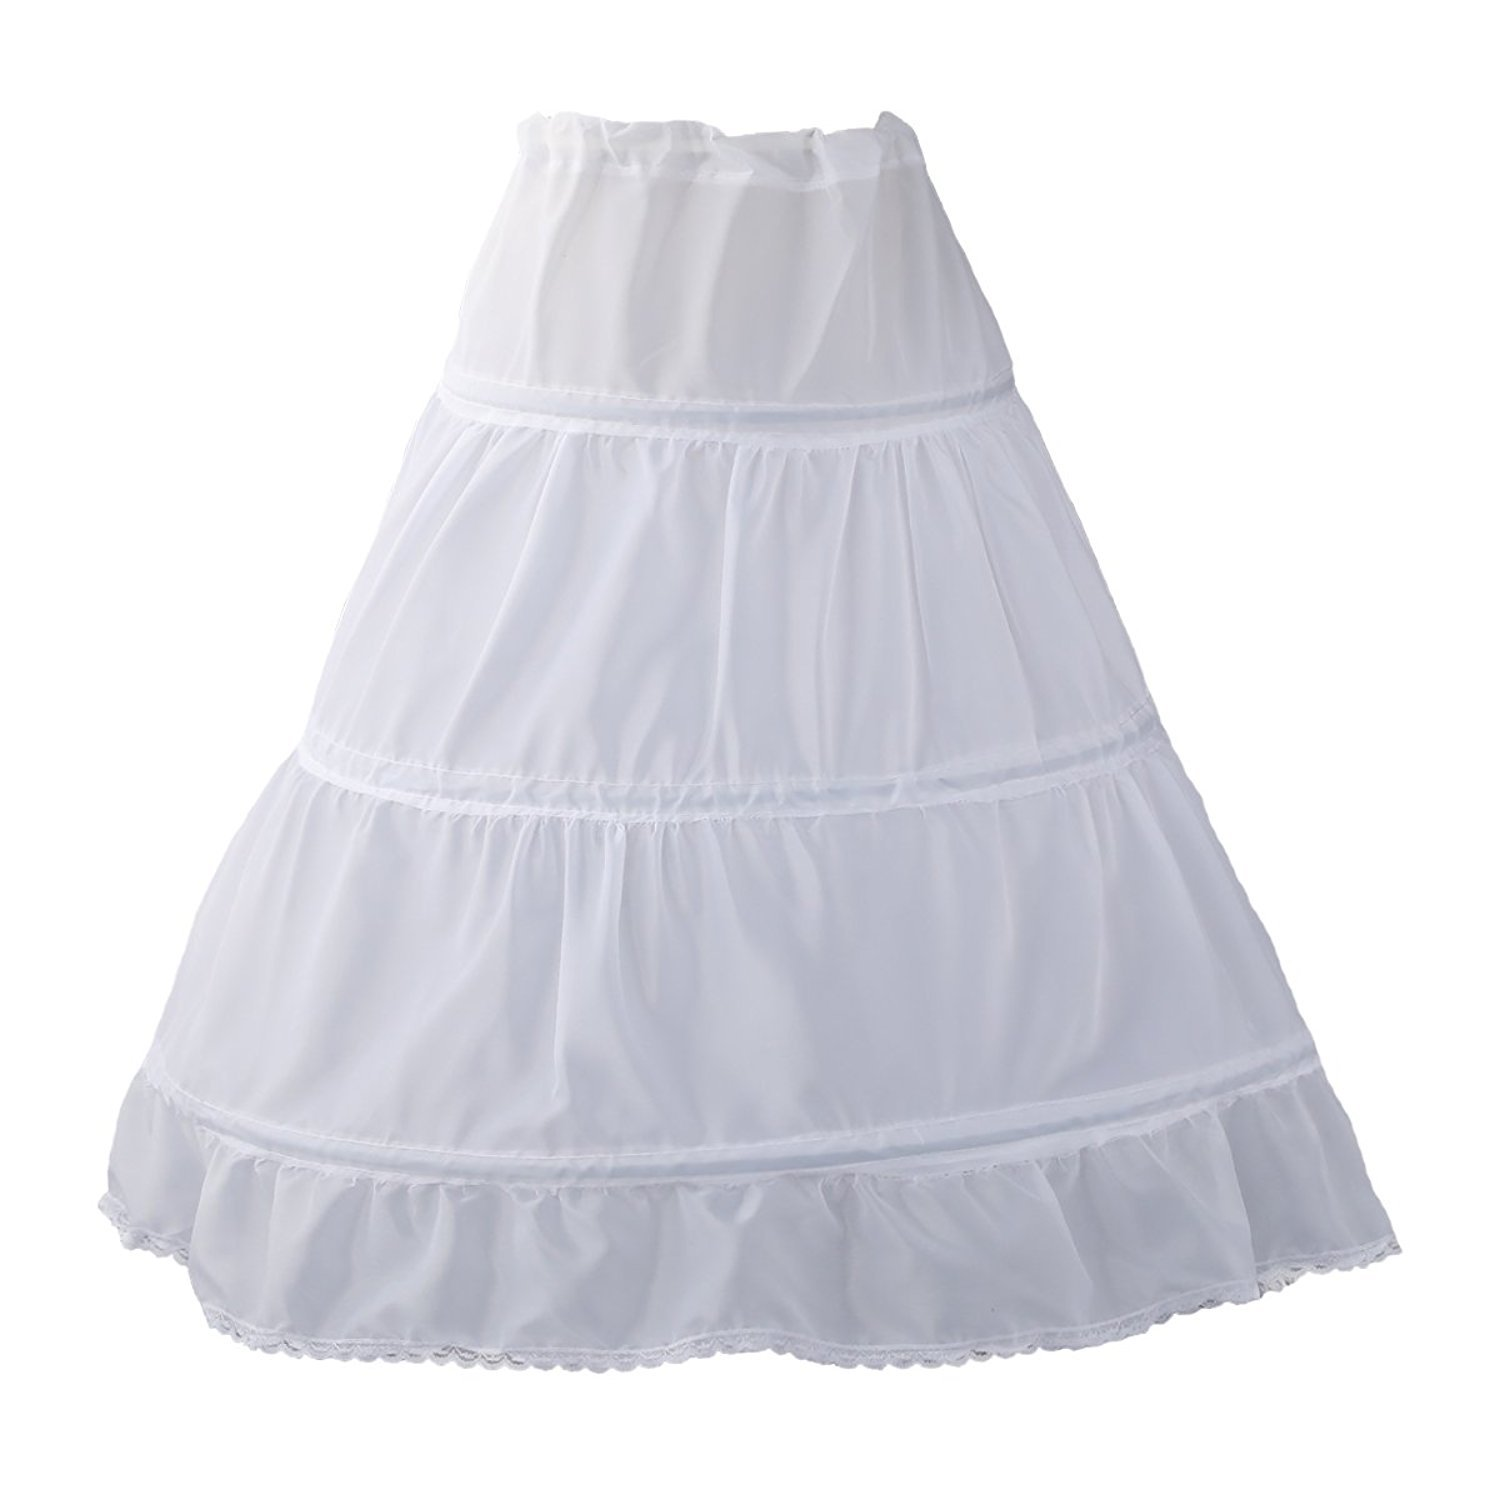 0951aca0d Amazon.com: Sittingley White Prom Use Petticoat for Little Age Girls One  Size: Clothing